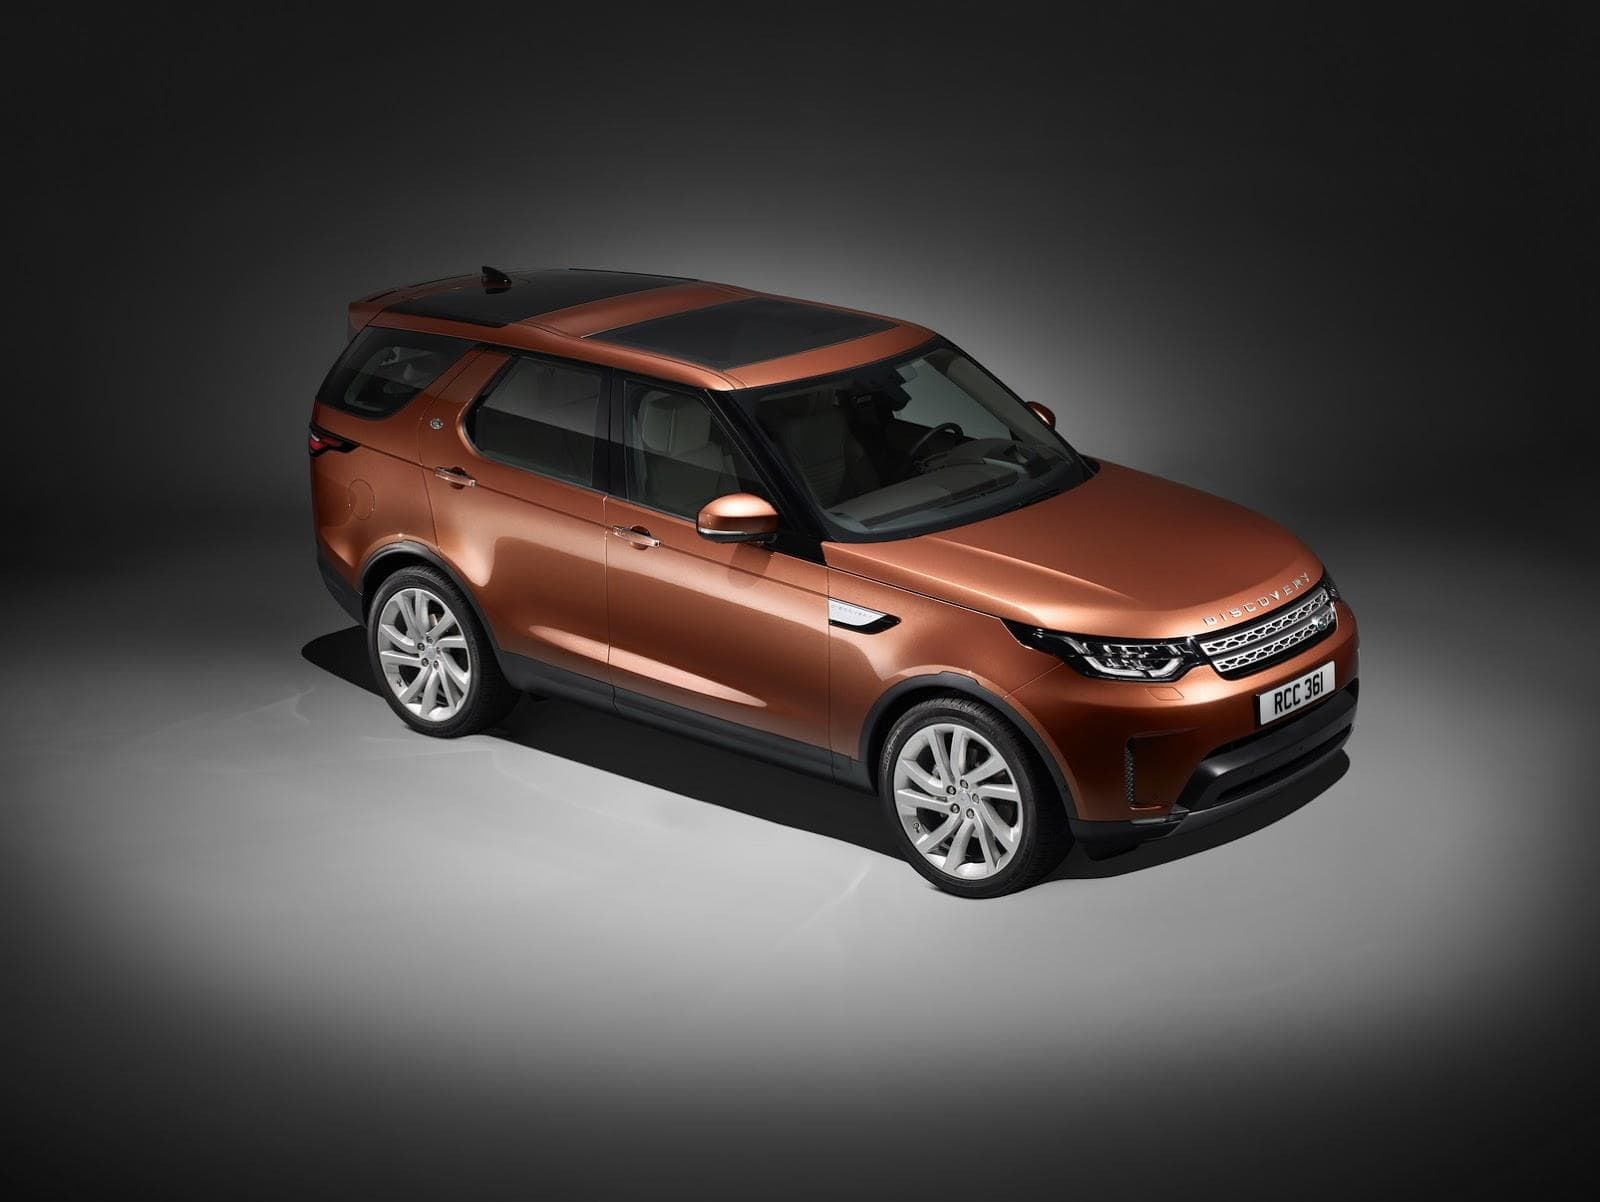 Land Rover Discovery 5 Wallpapers hd